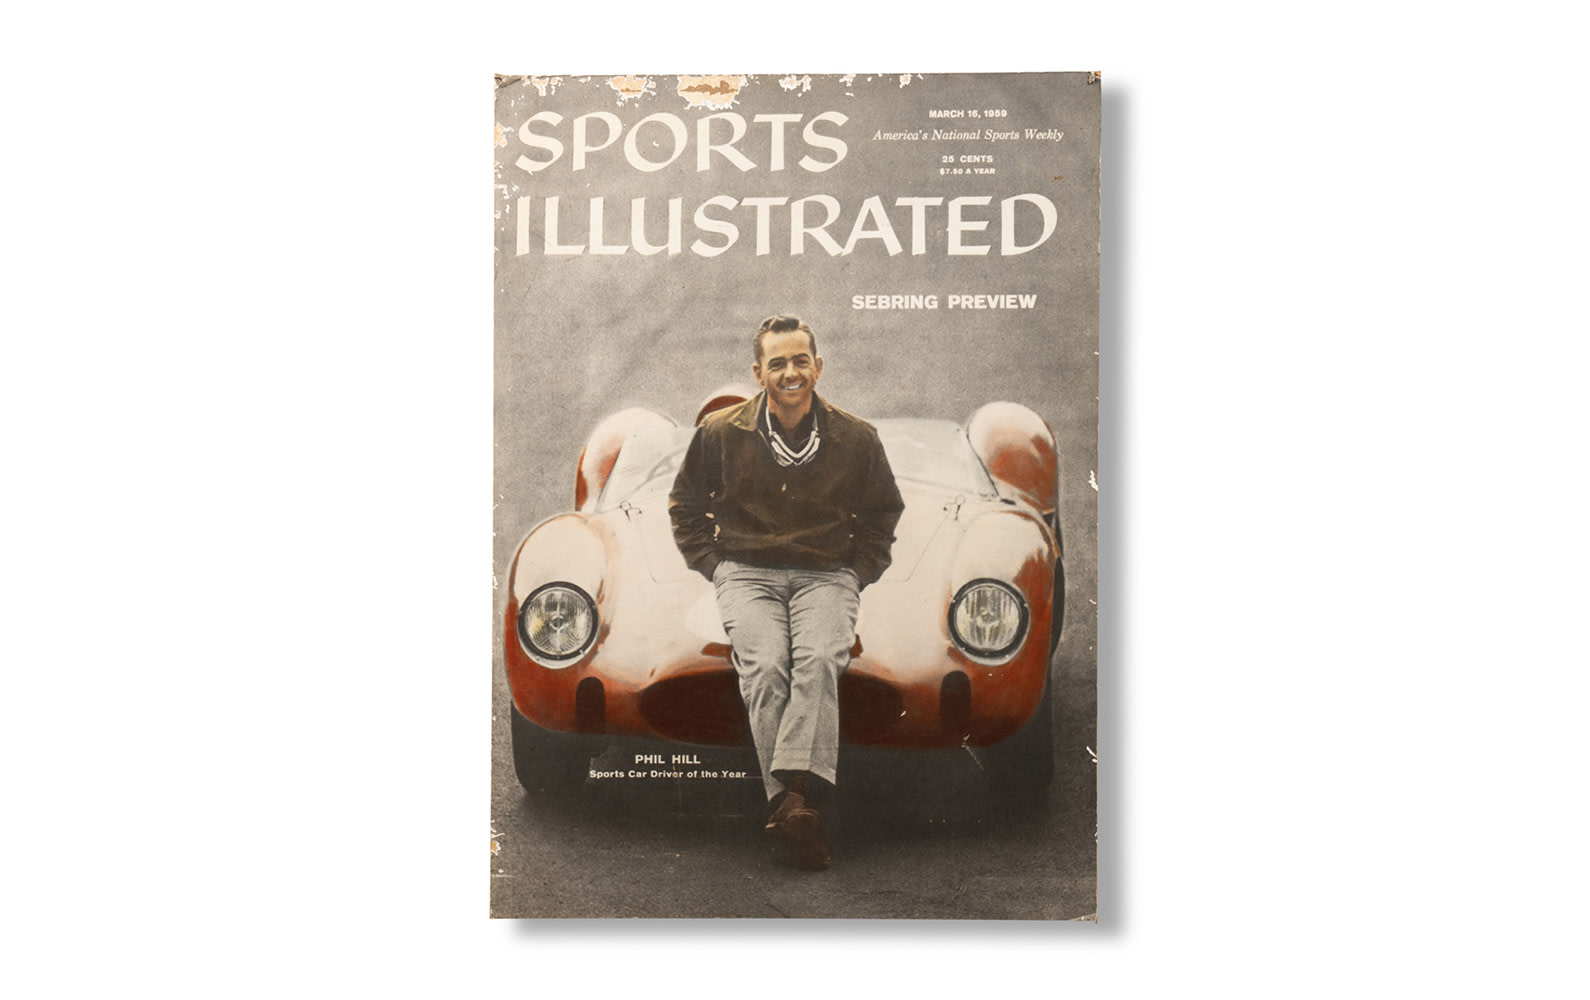 Poster of 1959 Sports Illustrated Magazine Cover